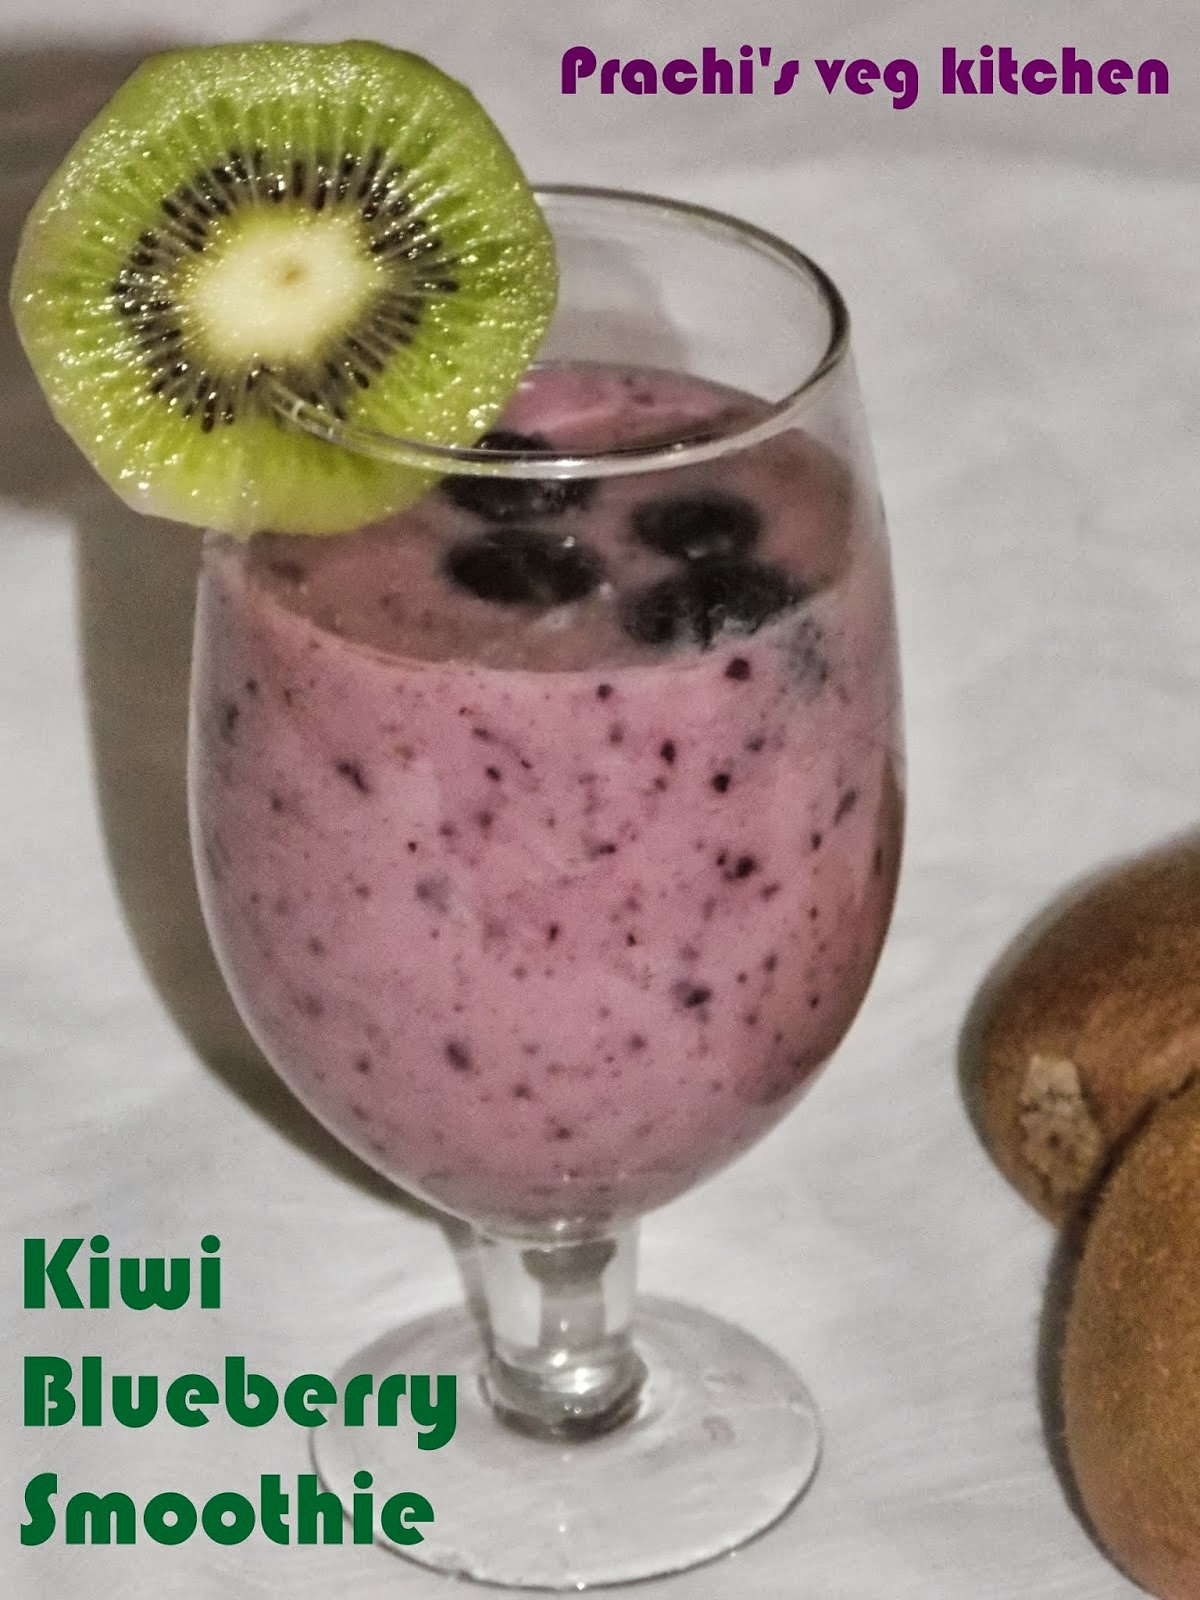 http://prachisvegkitchen.blogspot.in/2014/02/kiwi-blueberry-smoothie.html